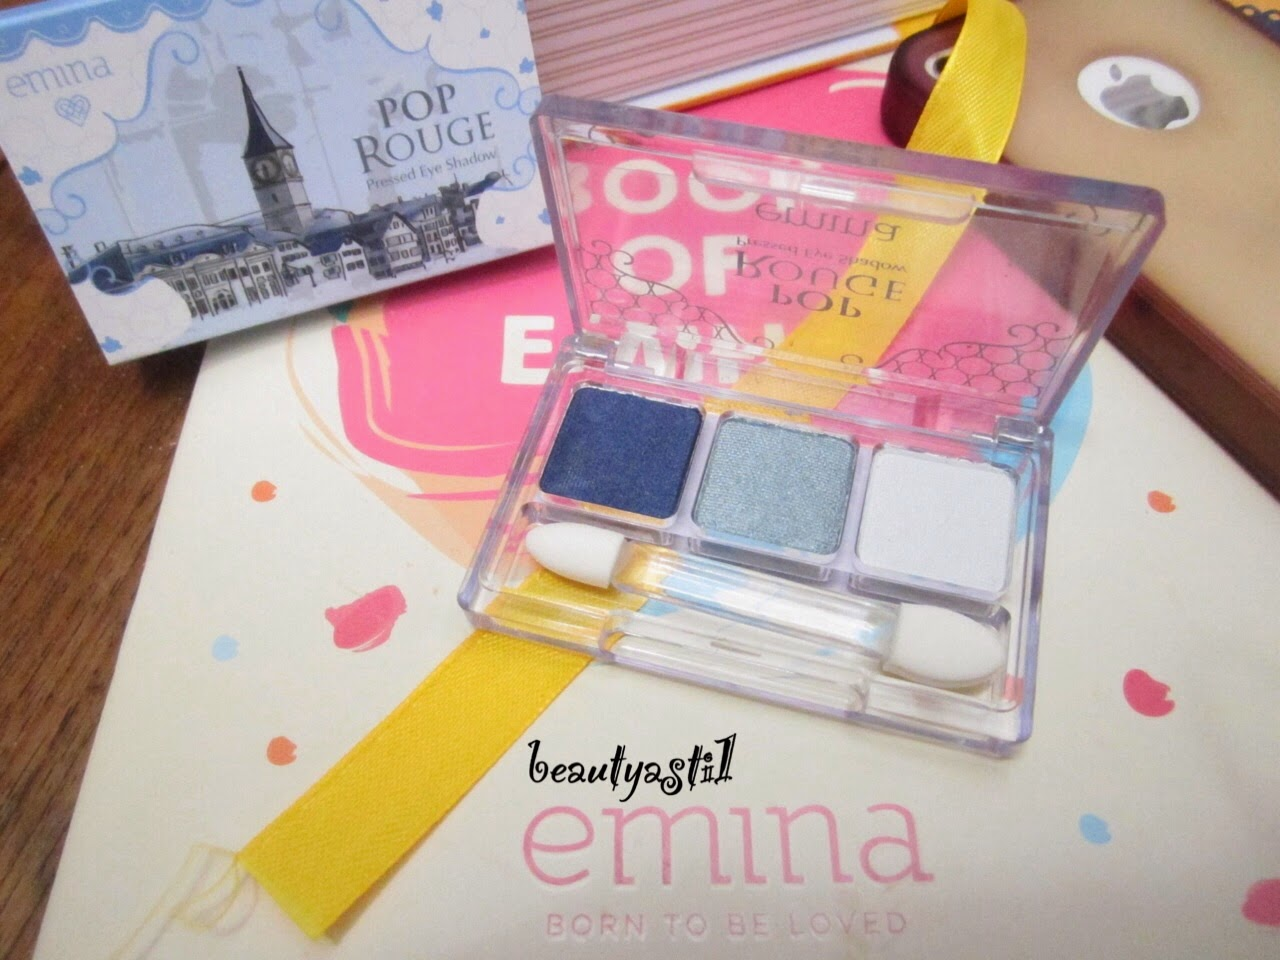 emina-pop-rouge-eyeshadow-review.jpg